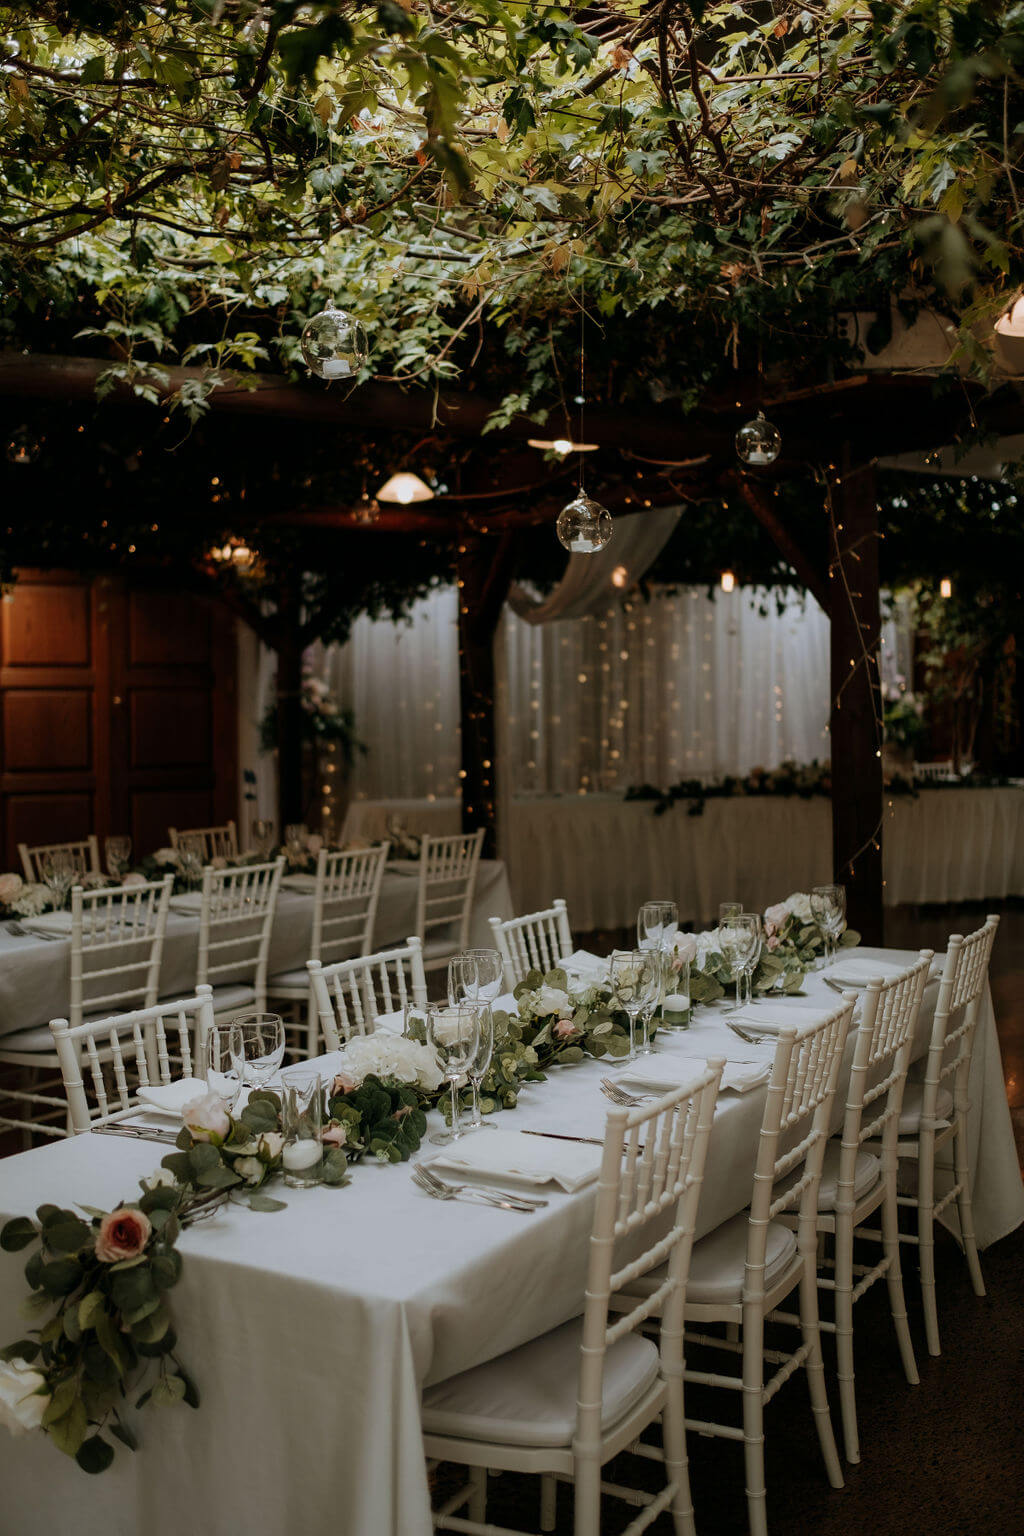 Markovina Vineyard Wedding Reception - white tables and chairs